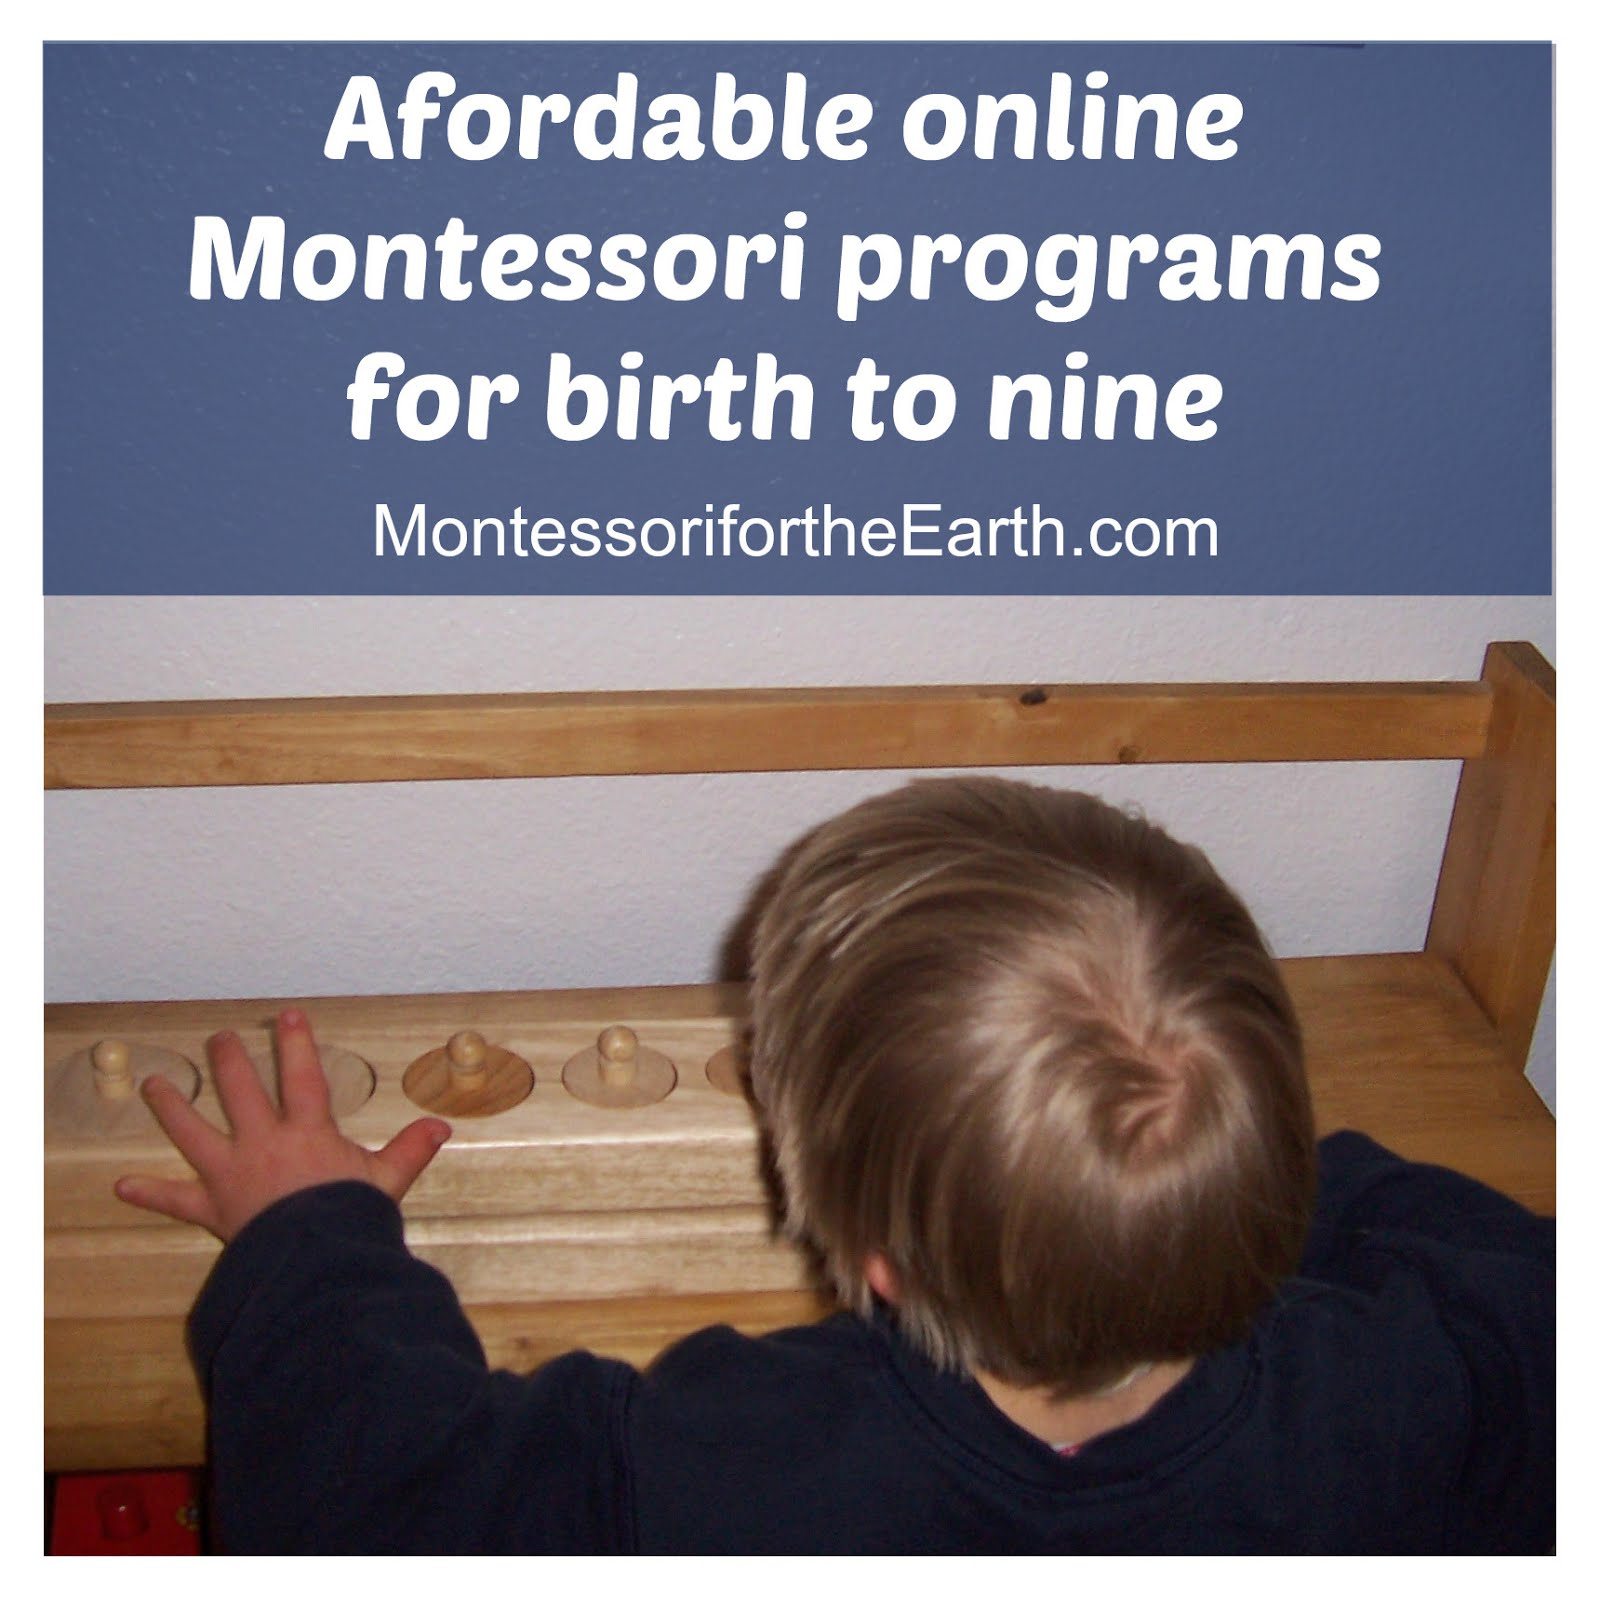 My Affordable Online Montessori